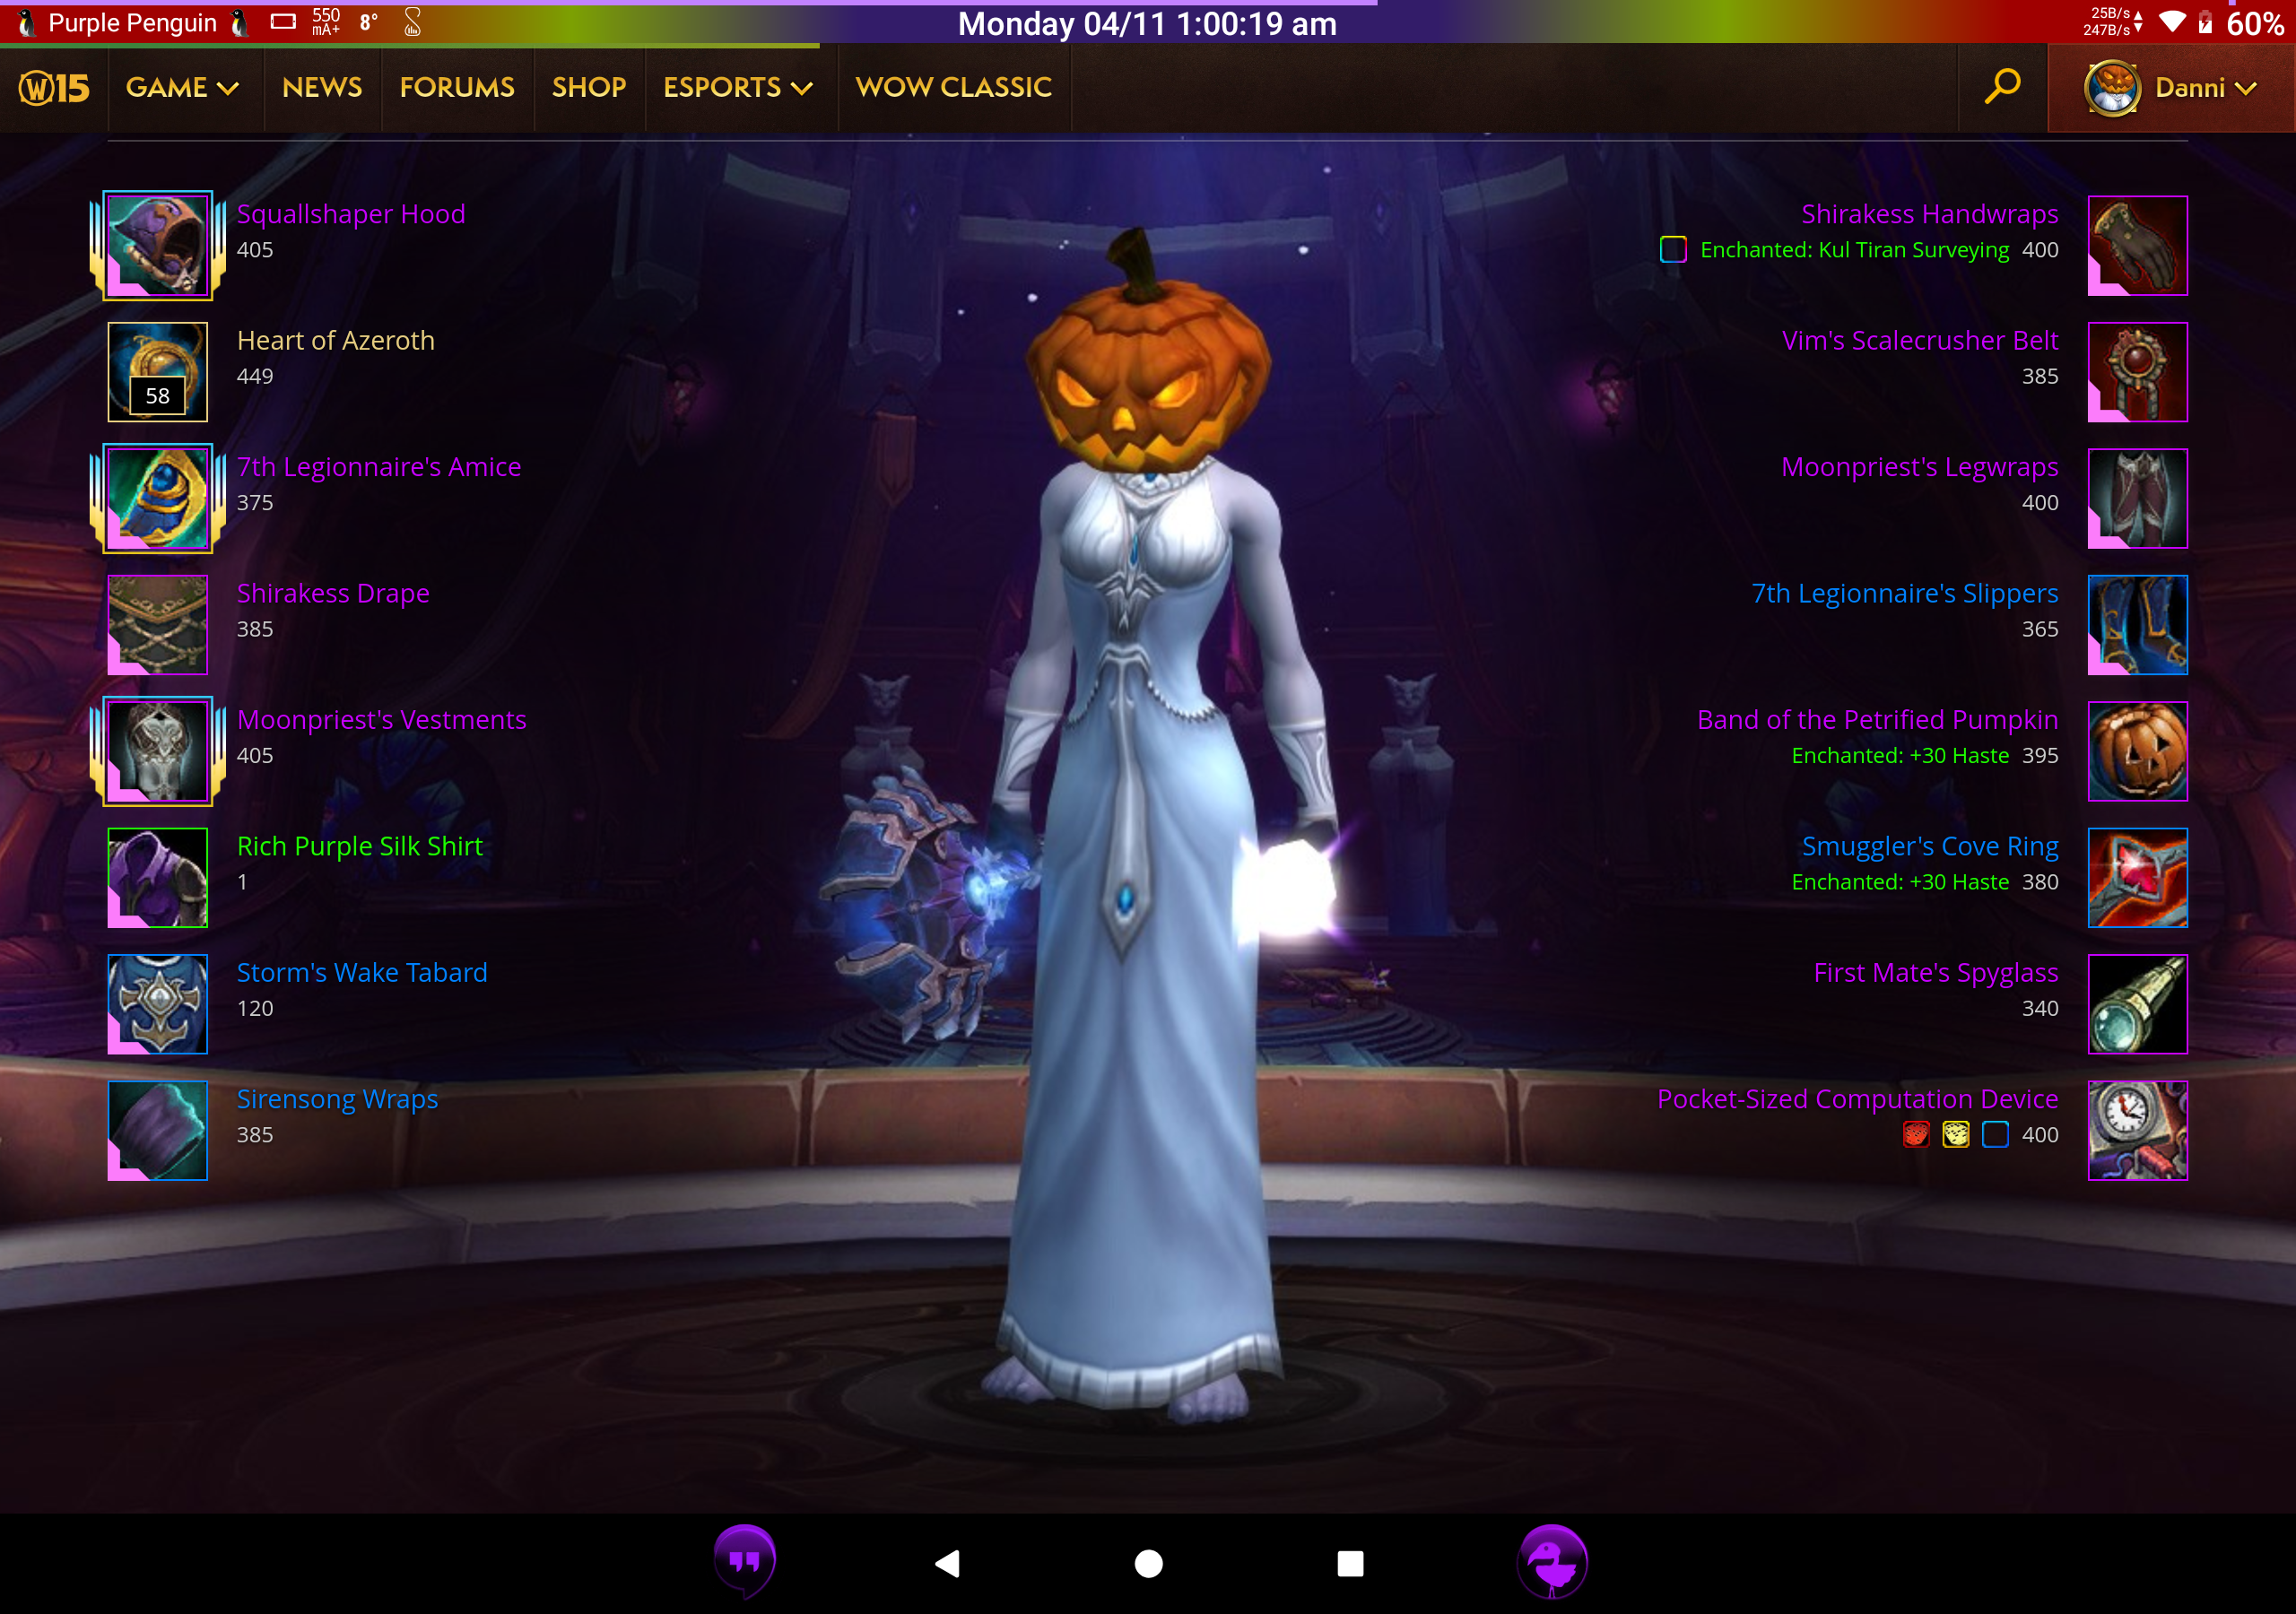 A screenshot of Danni's profile page. In the centre is a night elf, wearing a pumpkin that covers her entire head, a white robe, and carrying a fancy glowing mace and a purple glowing orb. Around the outside the equipment she's wearing is detailed.